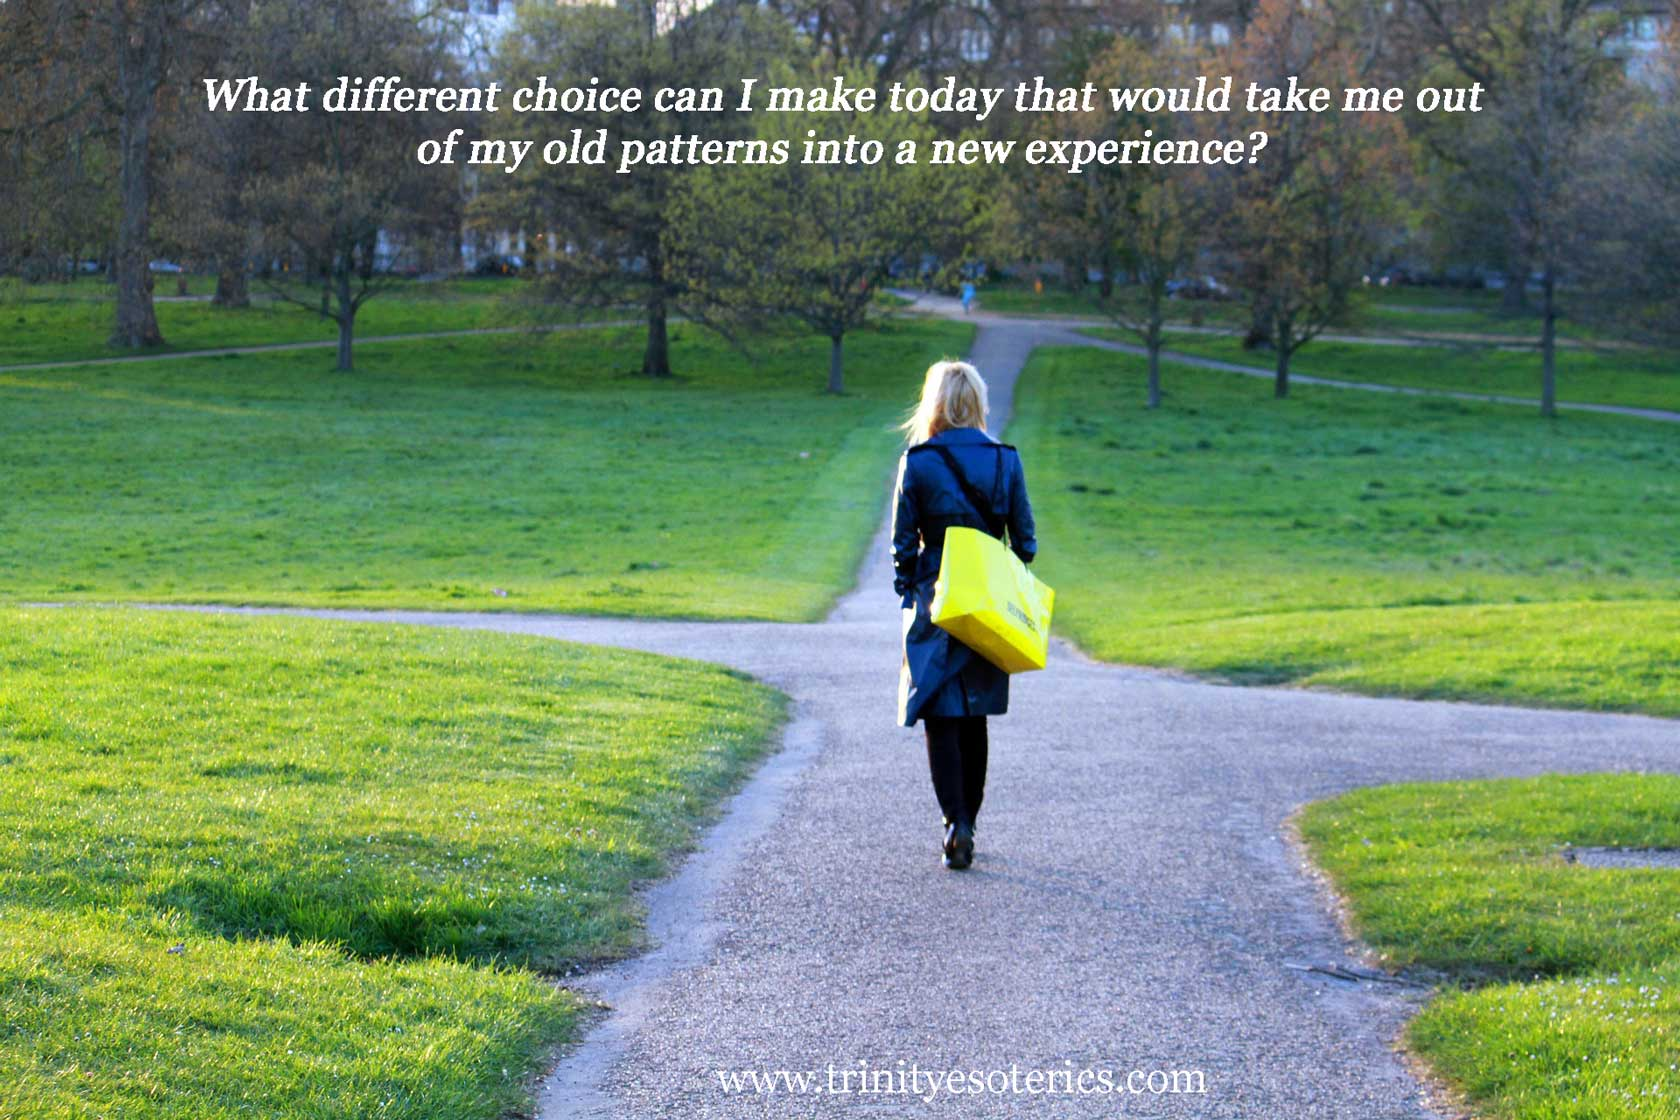 woman on path with options trinity esoterics